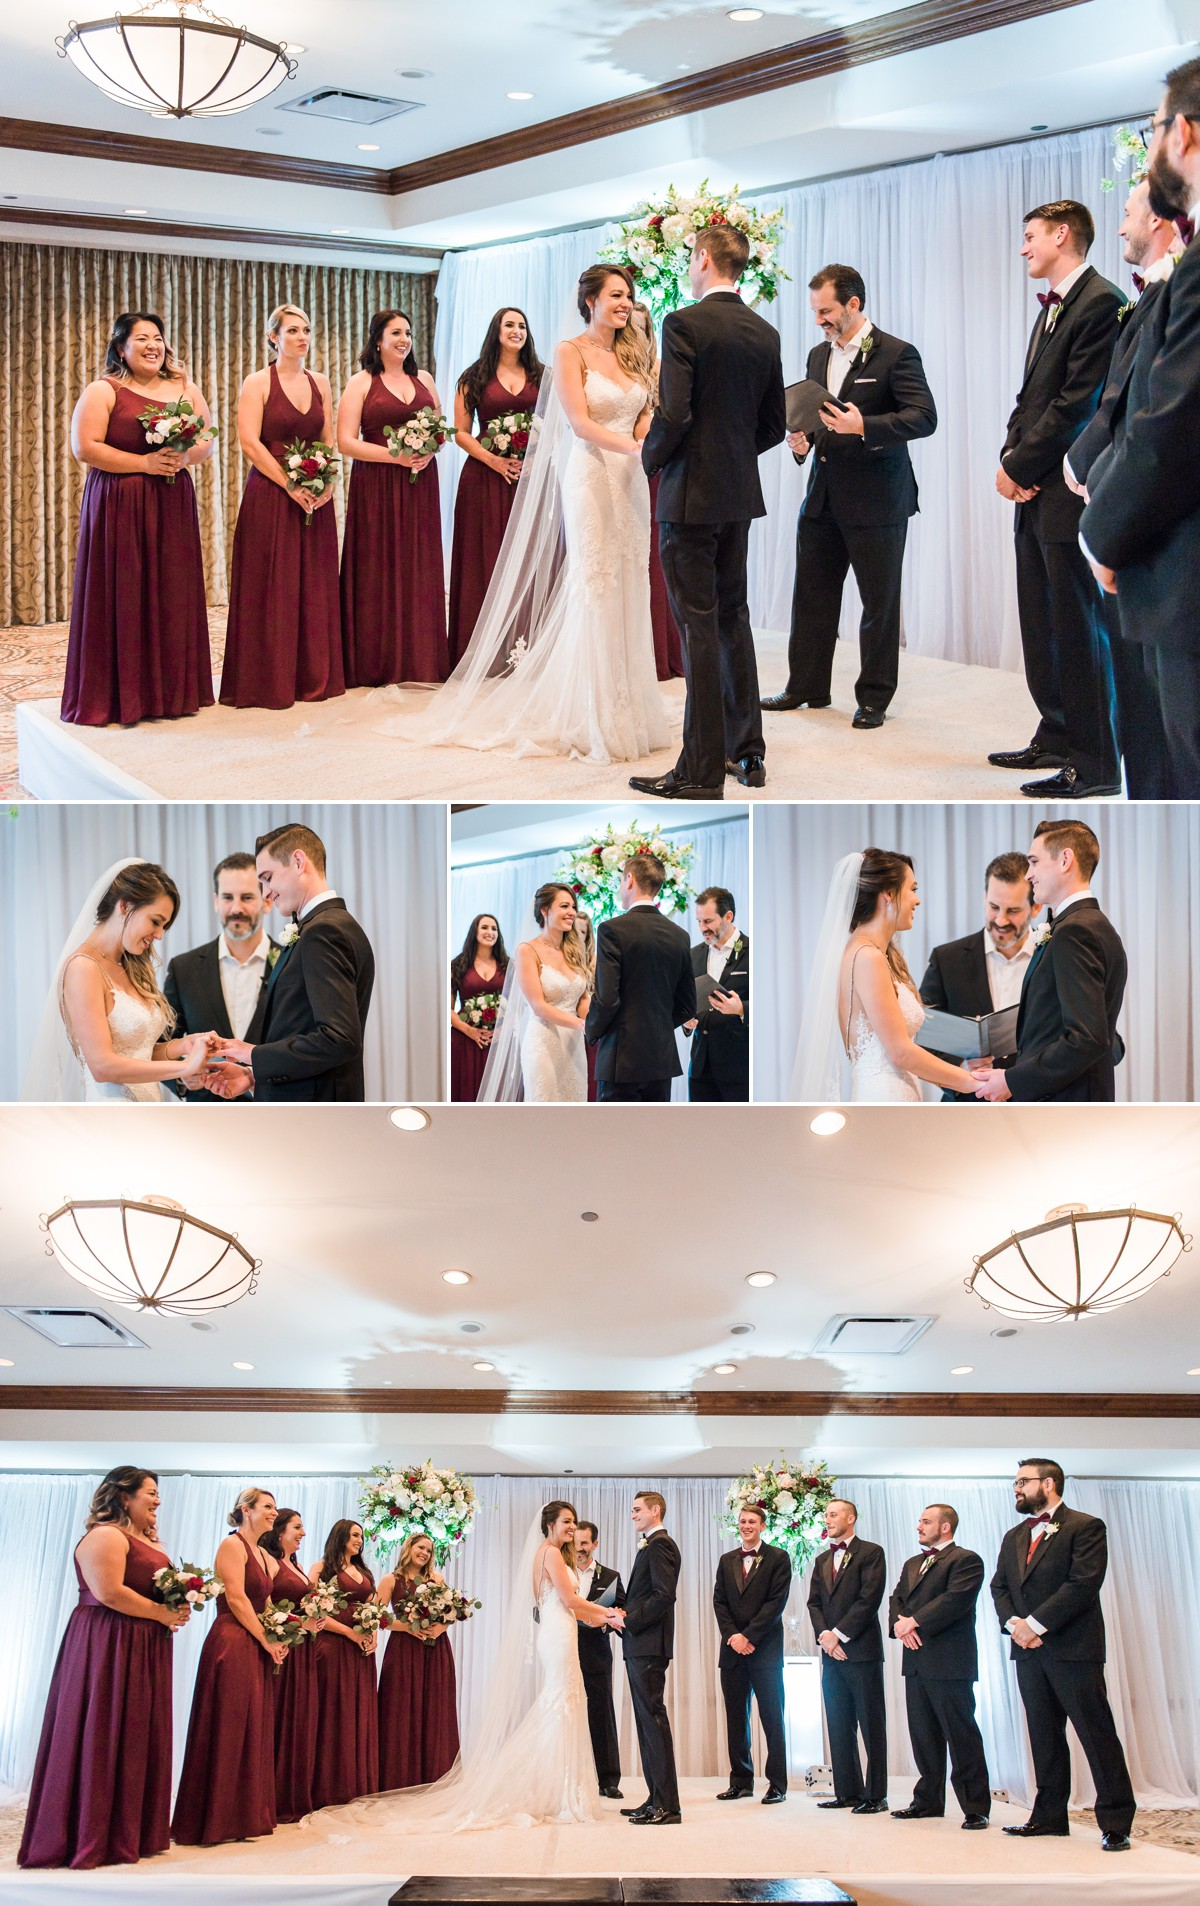 Manor House Wedding at The Houstonian Hotel Ceremony Color